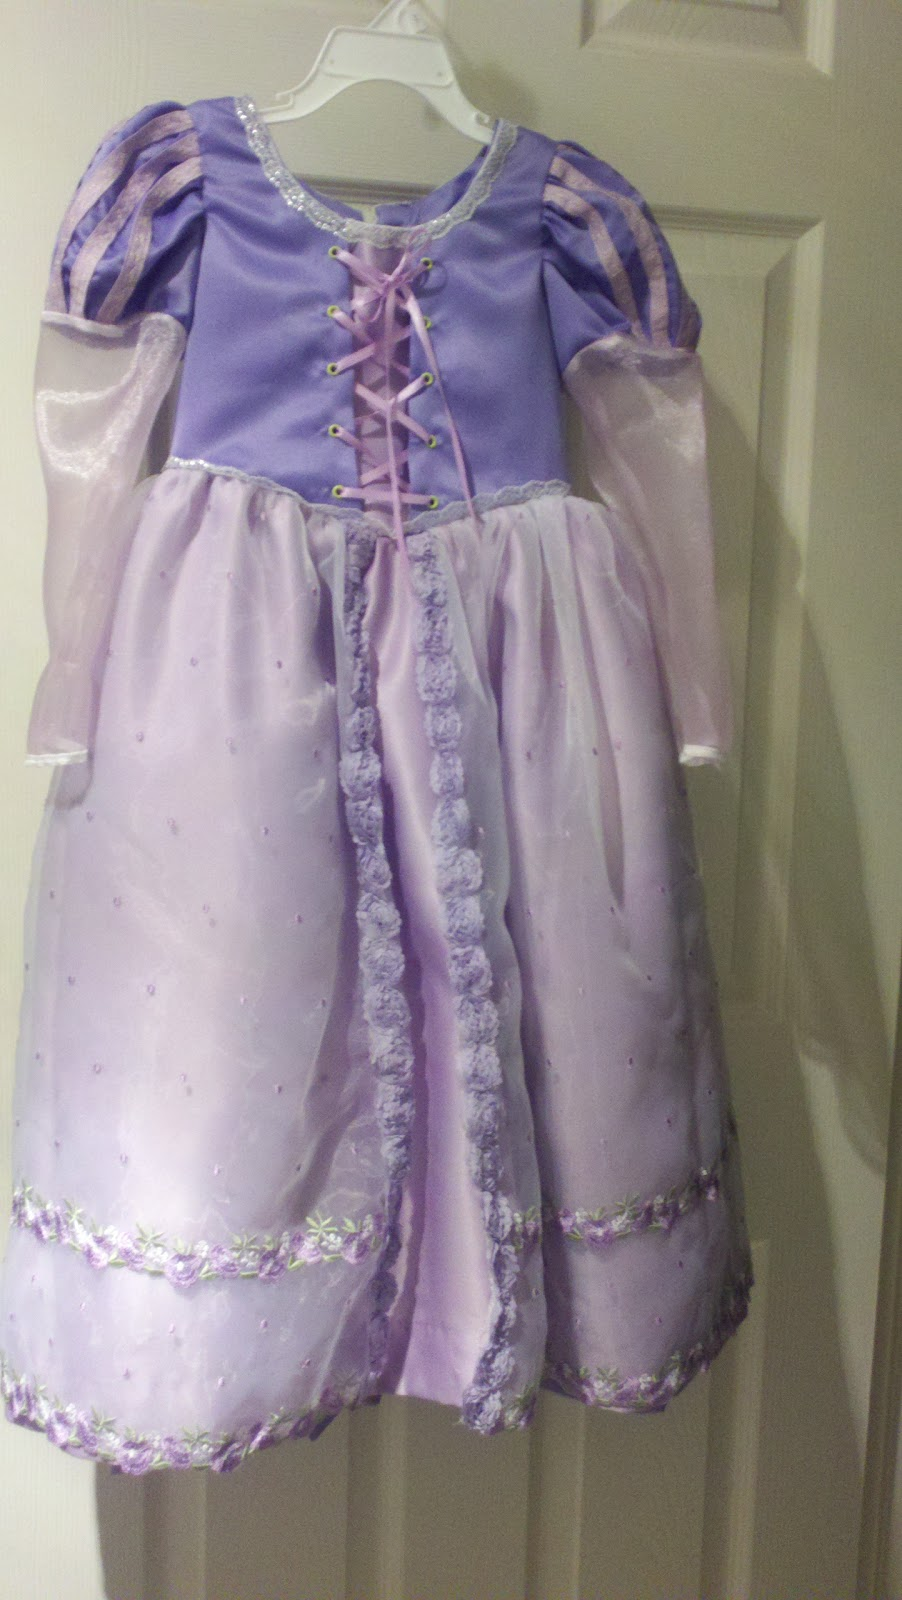 ... I get settle actually post all of the picture for the Rapunzel Dress that I made for a friends daughter. But until then here is the finished project. & That is all it took...: Rapunzel Dress - Simplicity 2065